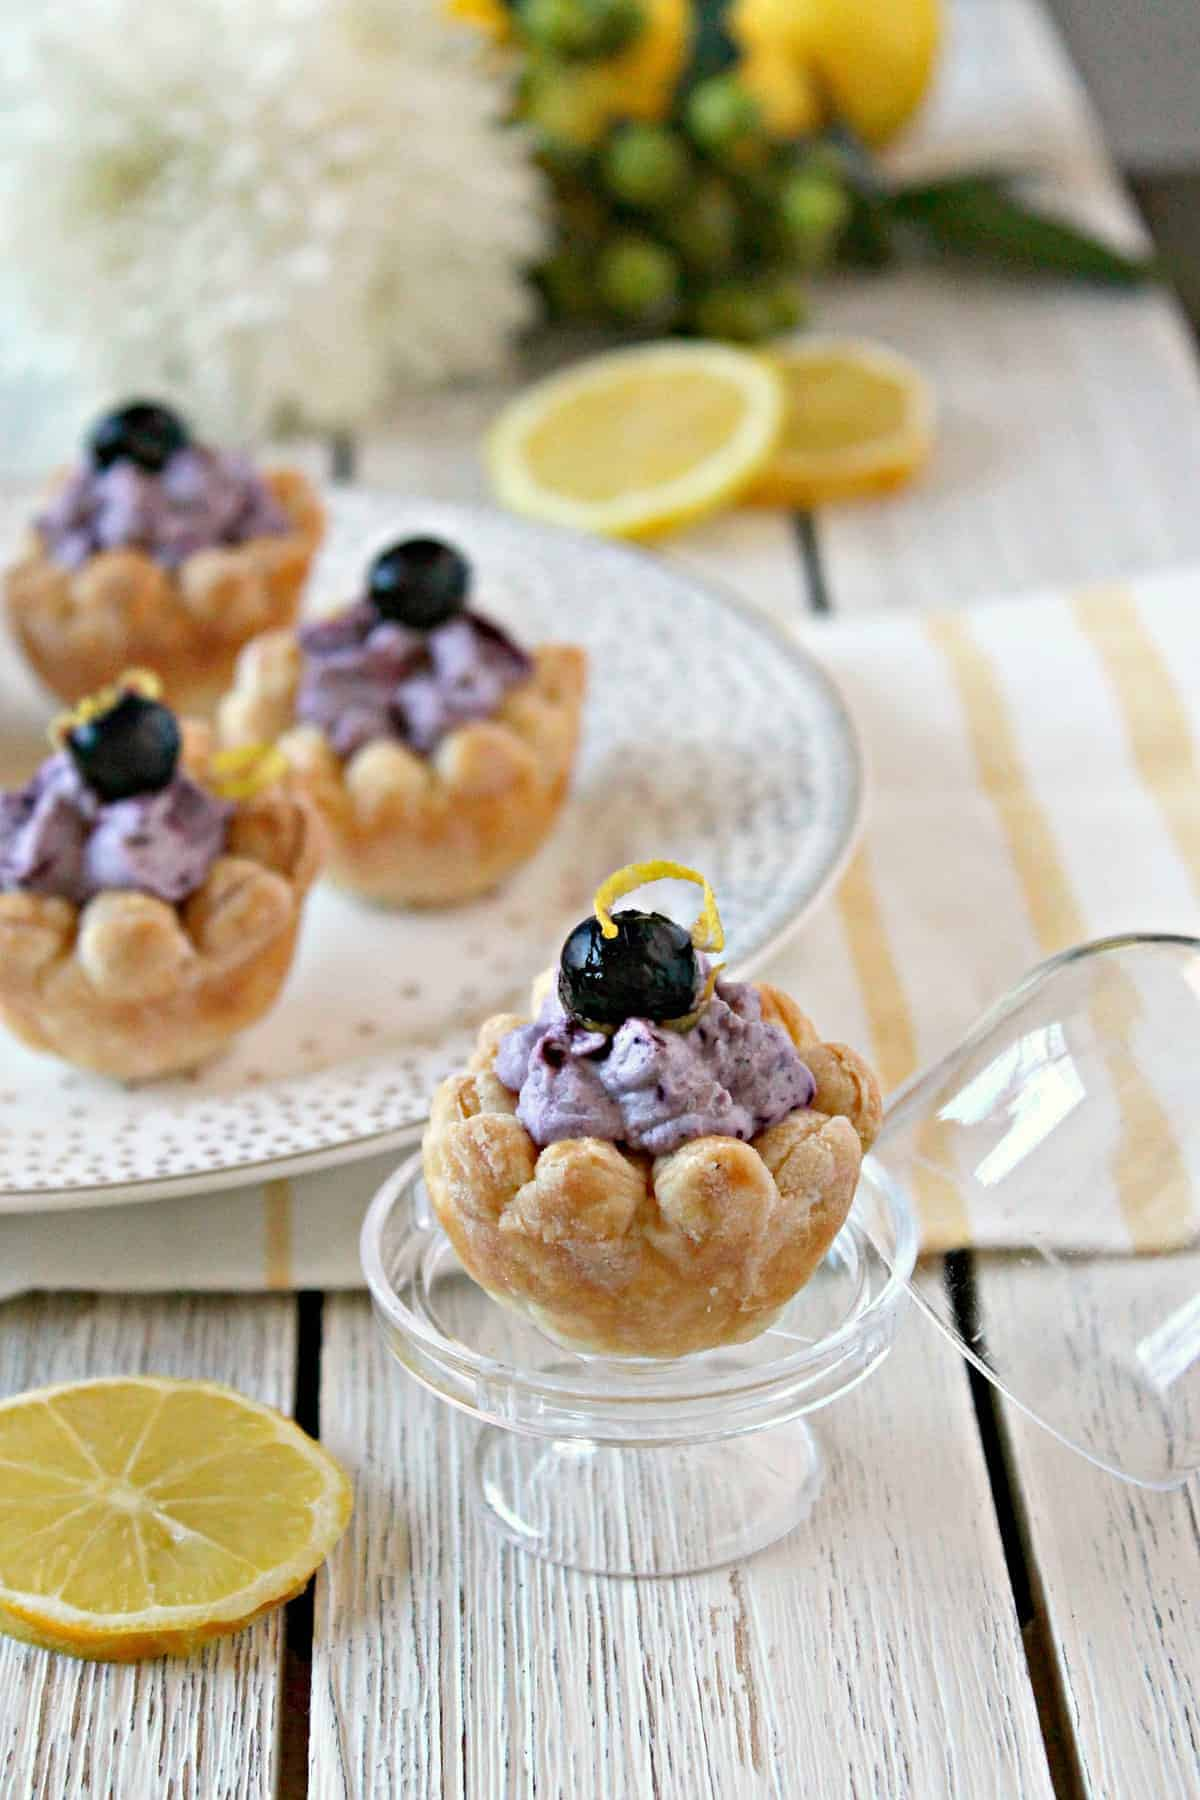 These adorably and delicate lemon and blueberry puff pastry blossoms are a sweet and simple treat